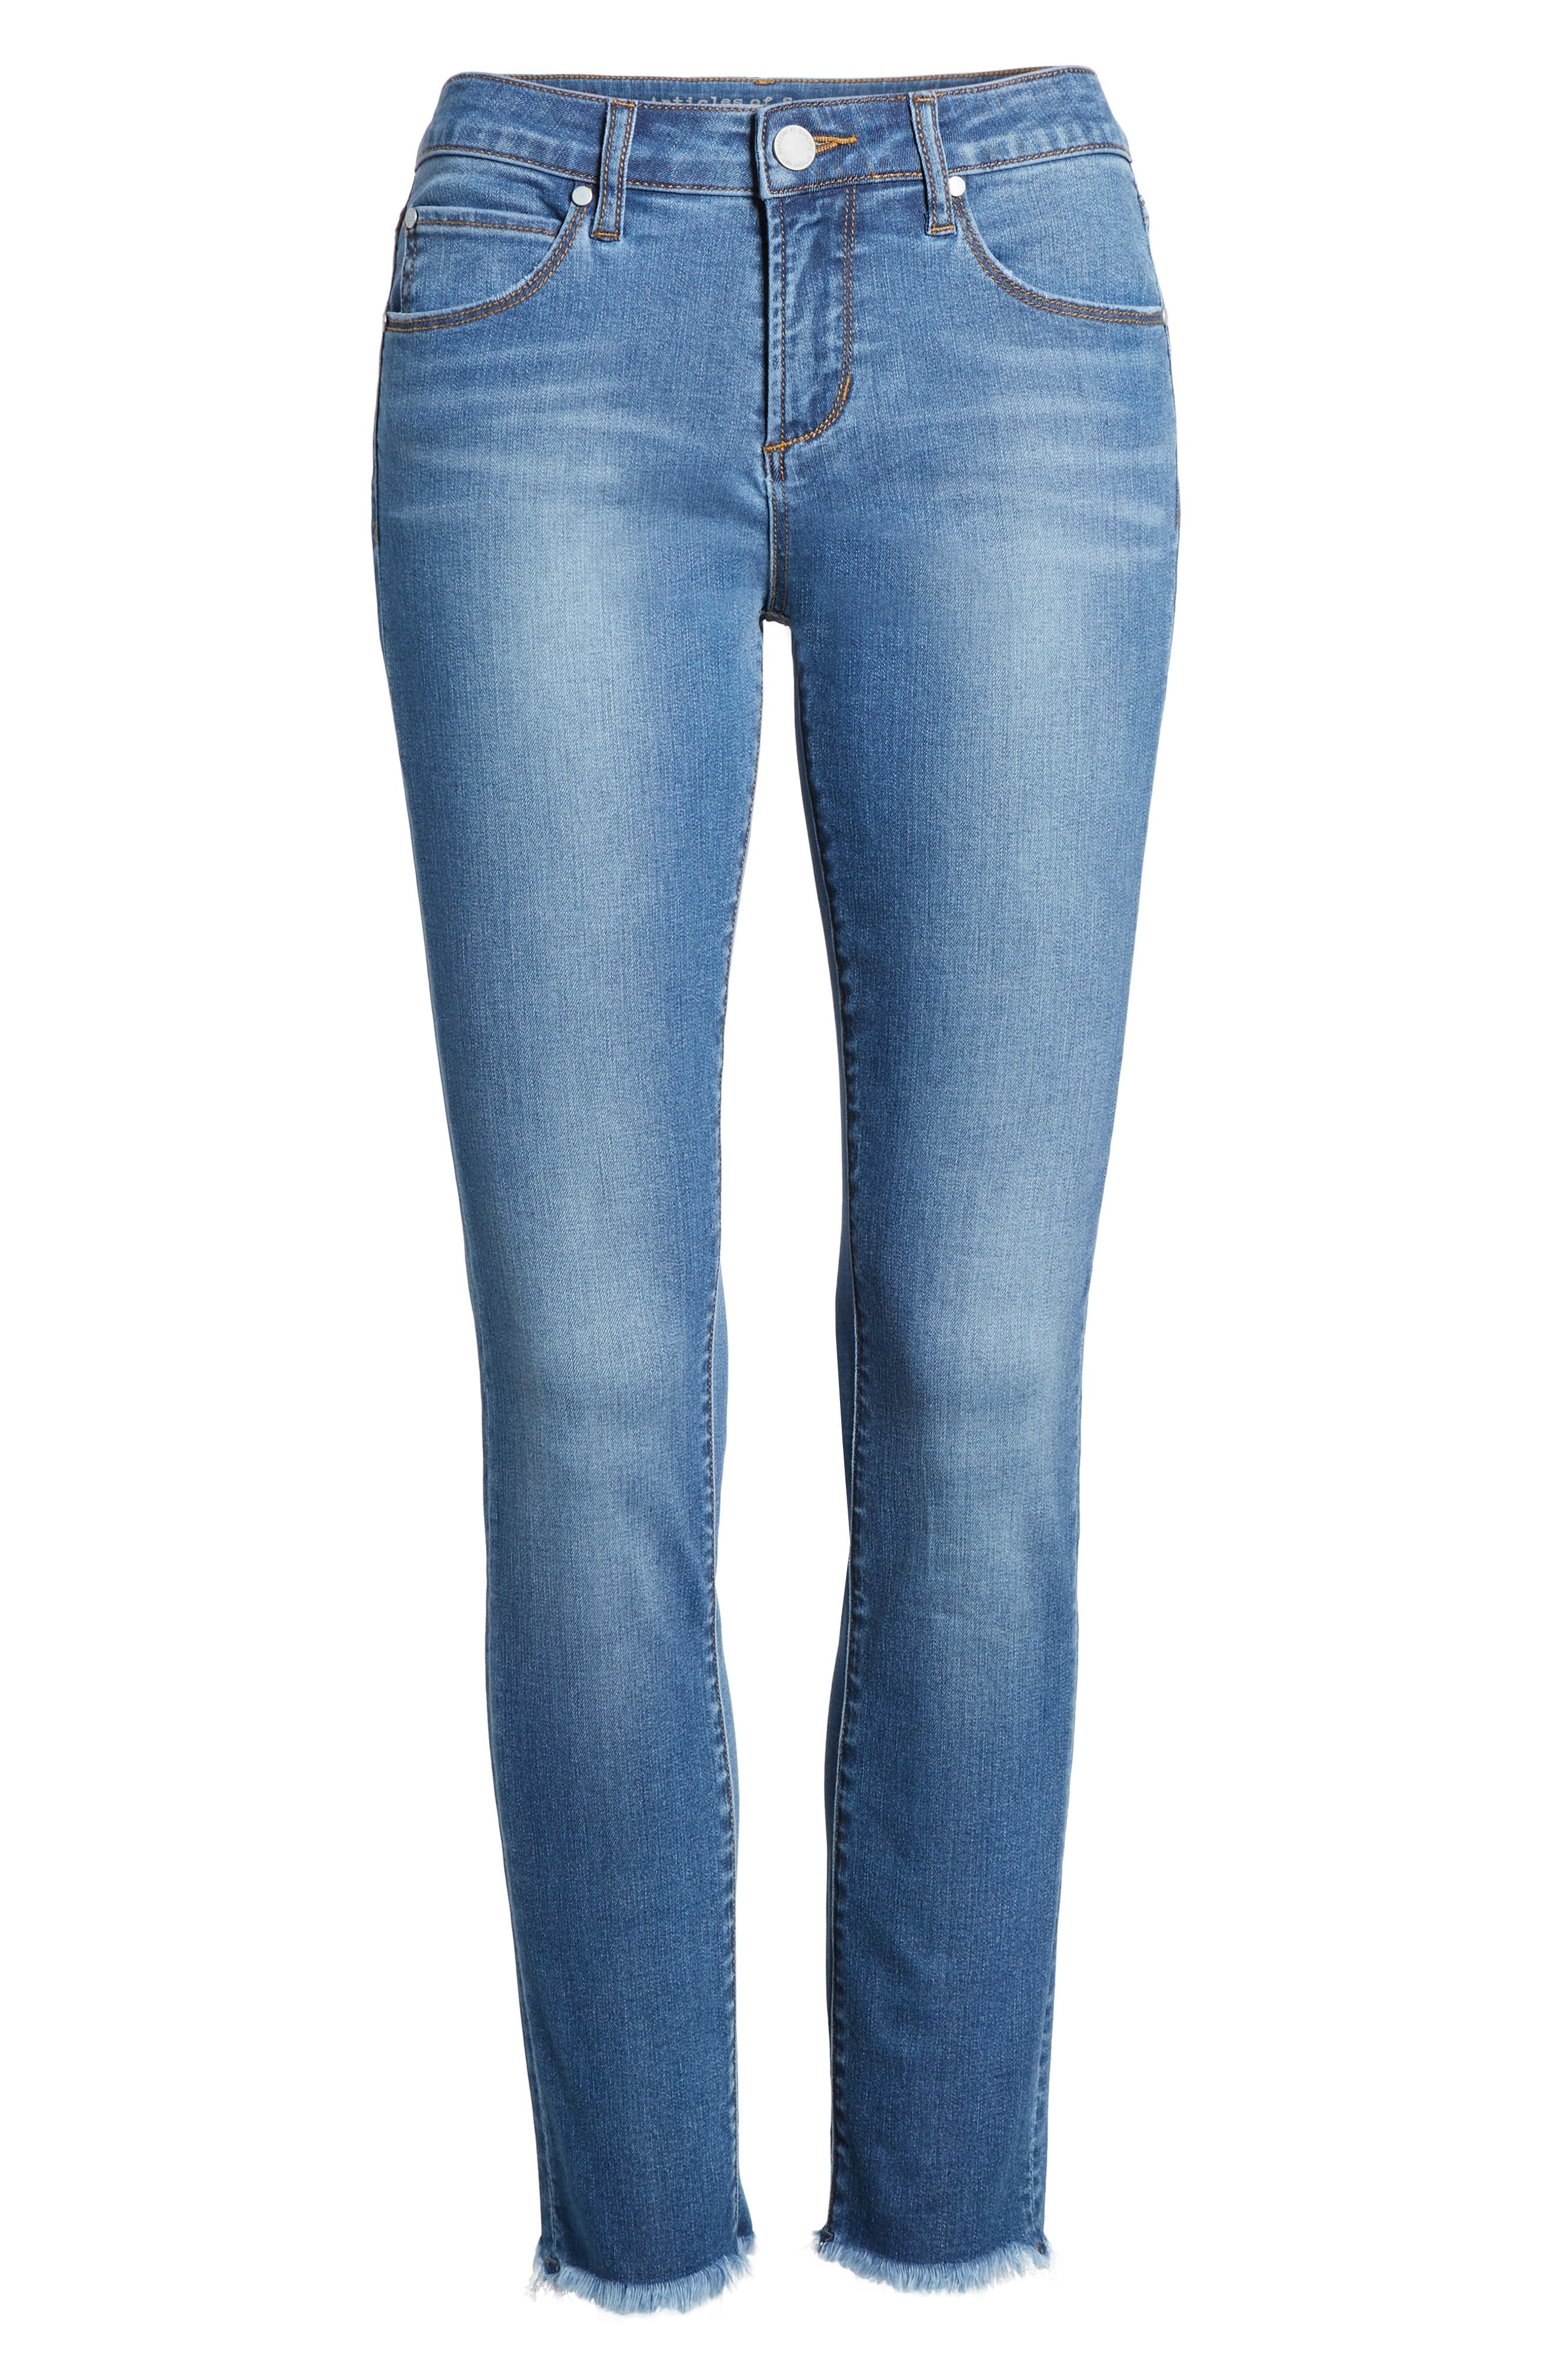 Carly Ankle Skinny Jeans,                             Alternate thumbnail 7, color,                             Sparta